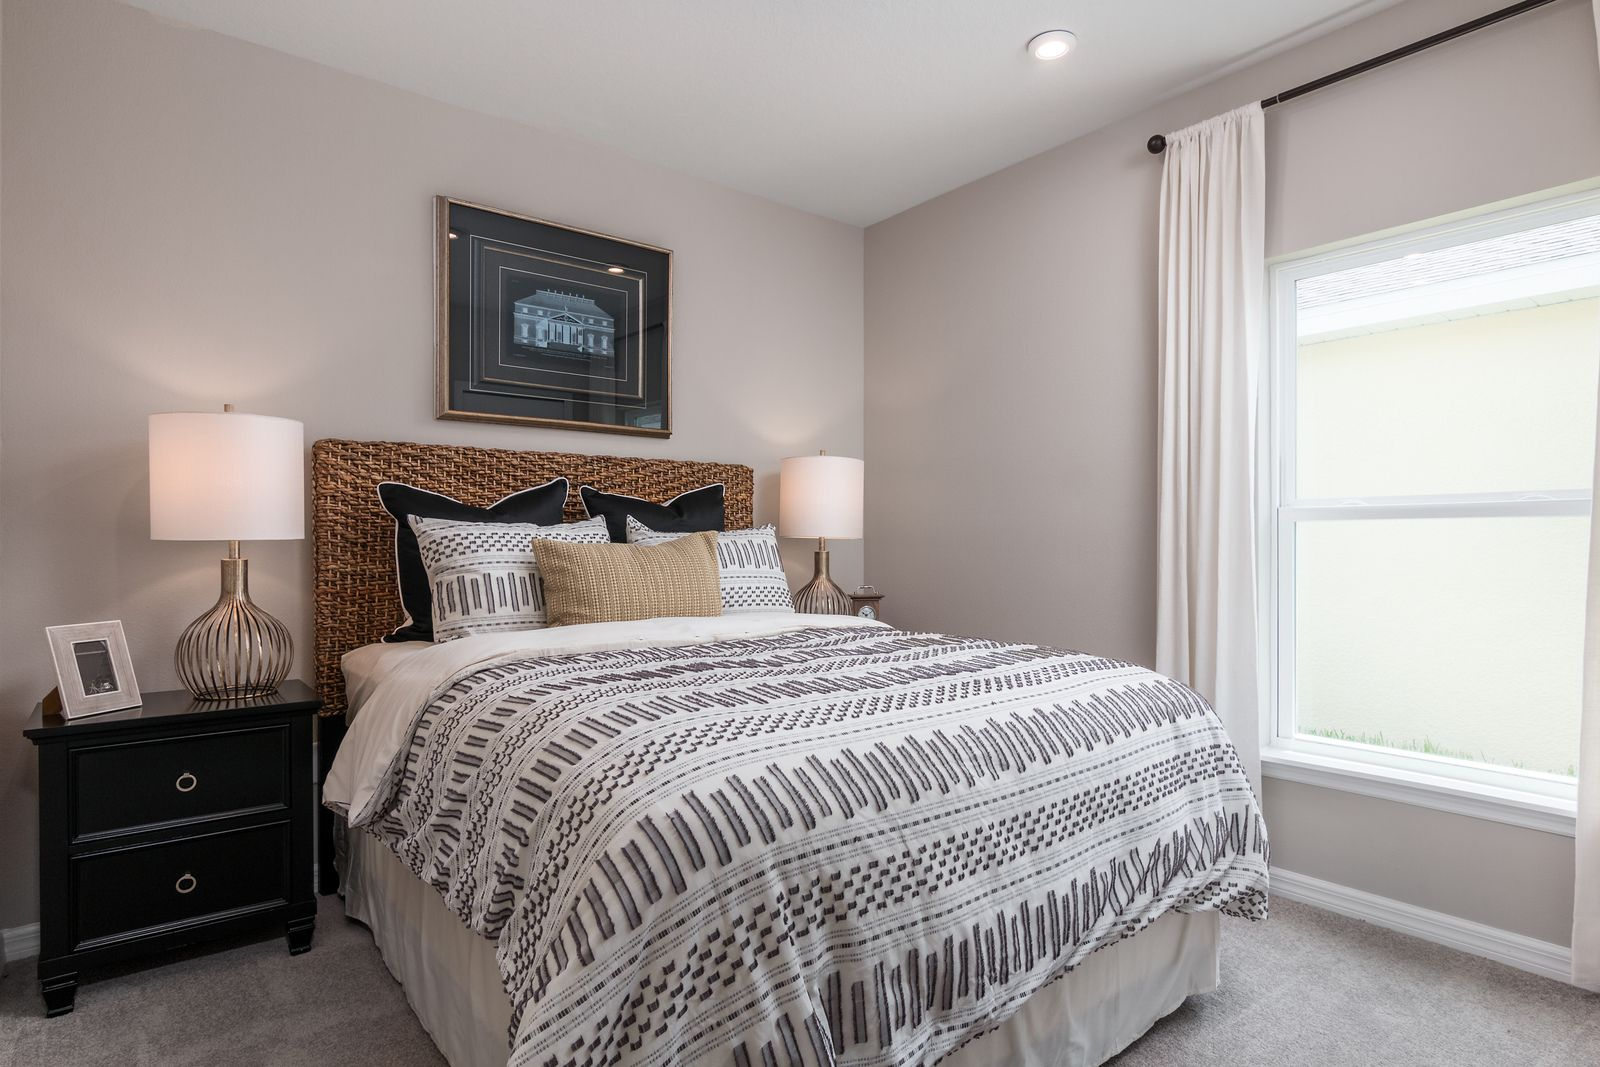 Bedroom featured in the Ponte Vedra By Ryan Homes in Martin-St. Lucie-Okeechobee Counties, FL